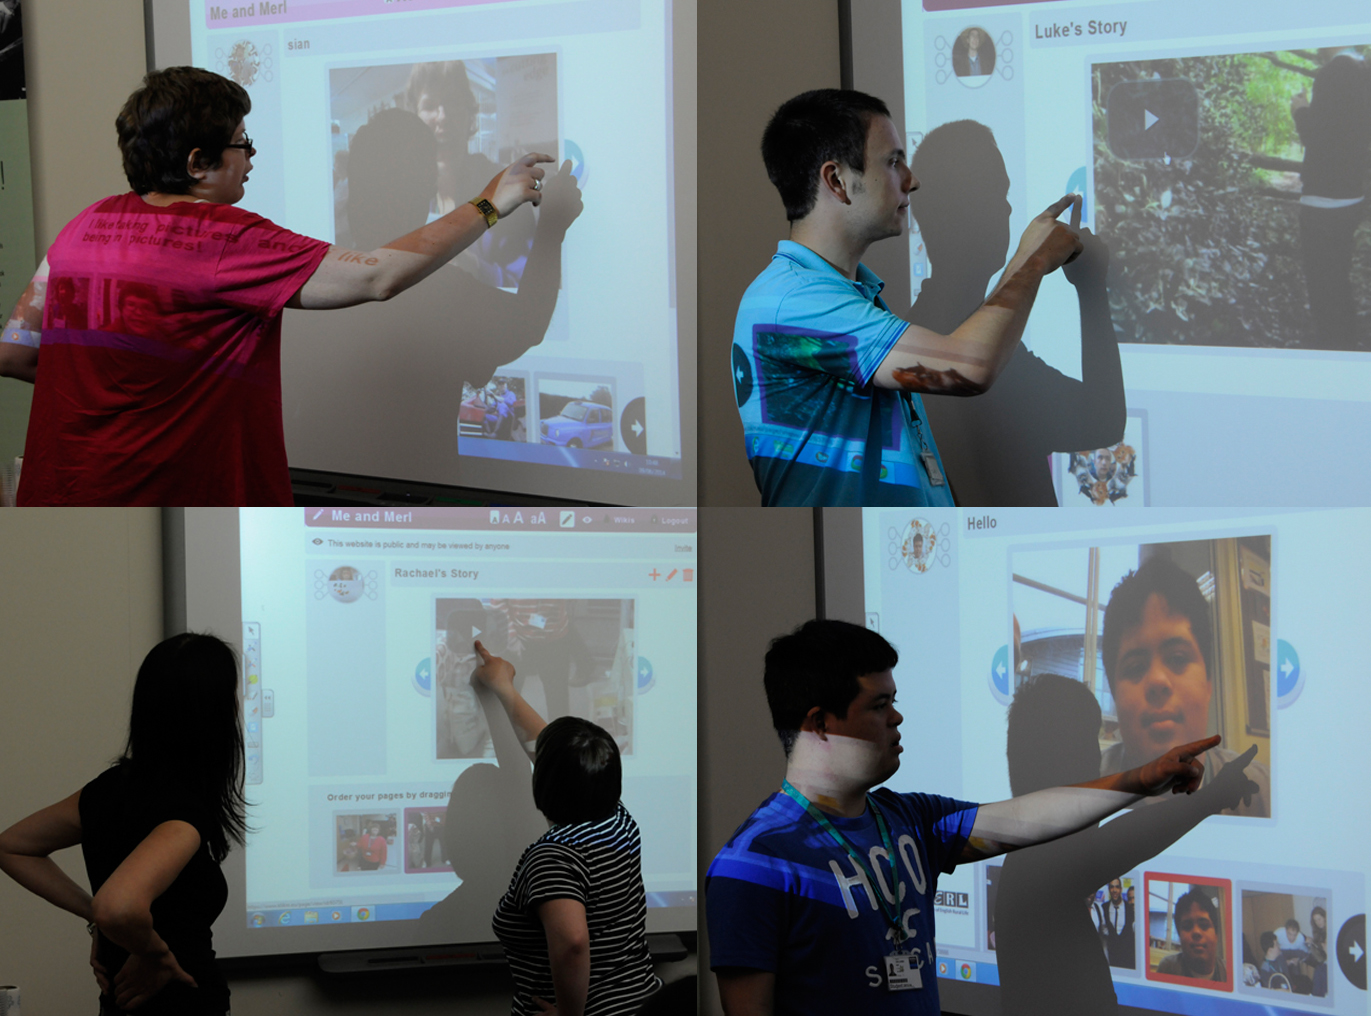 Co-researchers Wikis on smart board